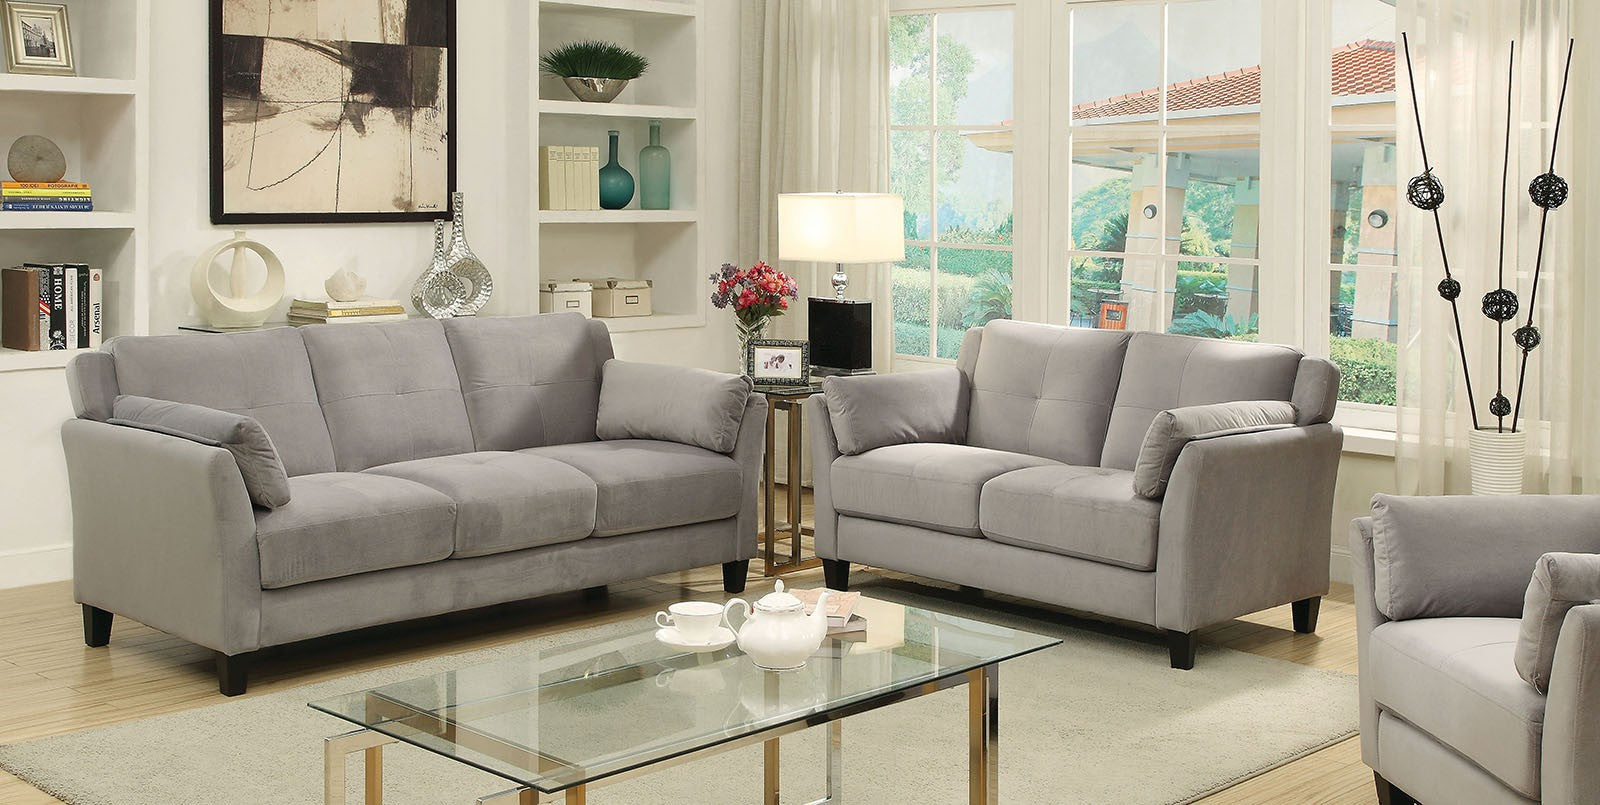 YSABEL 2PC SOFA & LOVESEAT SET